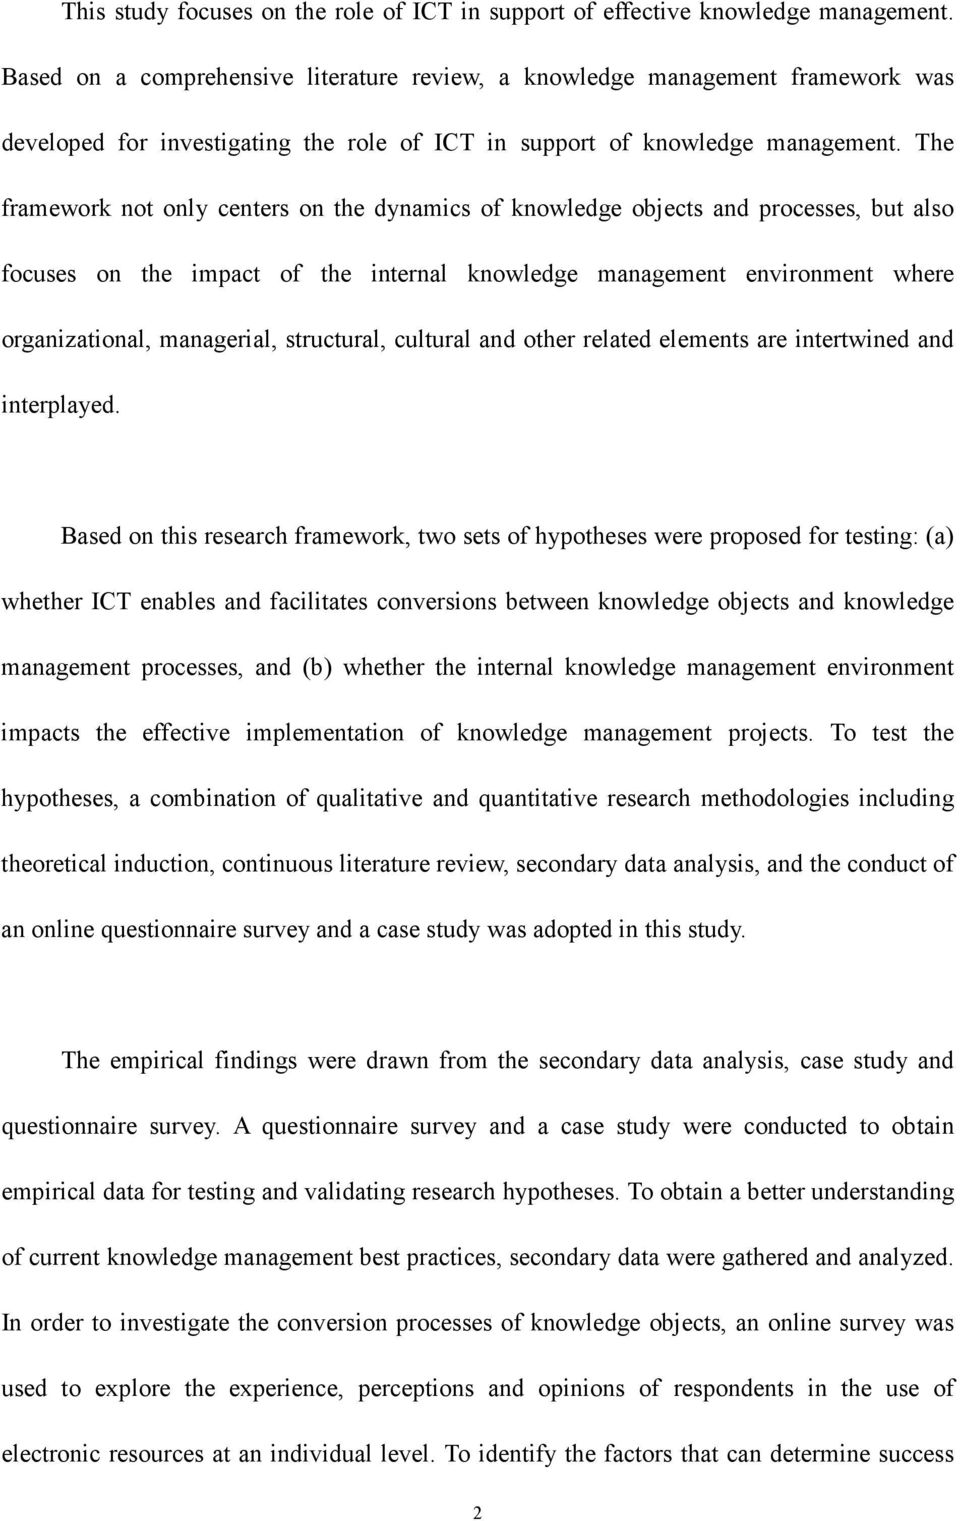 The framework not only centers on the dynamics of knowledge objects and processes, but also focuses on the impact of the internal knowledge management environment where organizational, managerial,